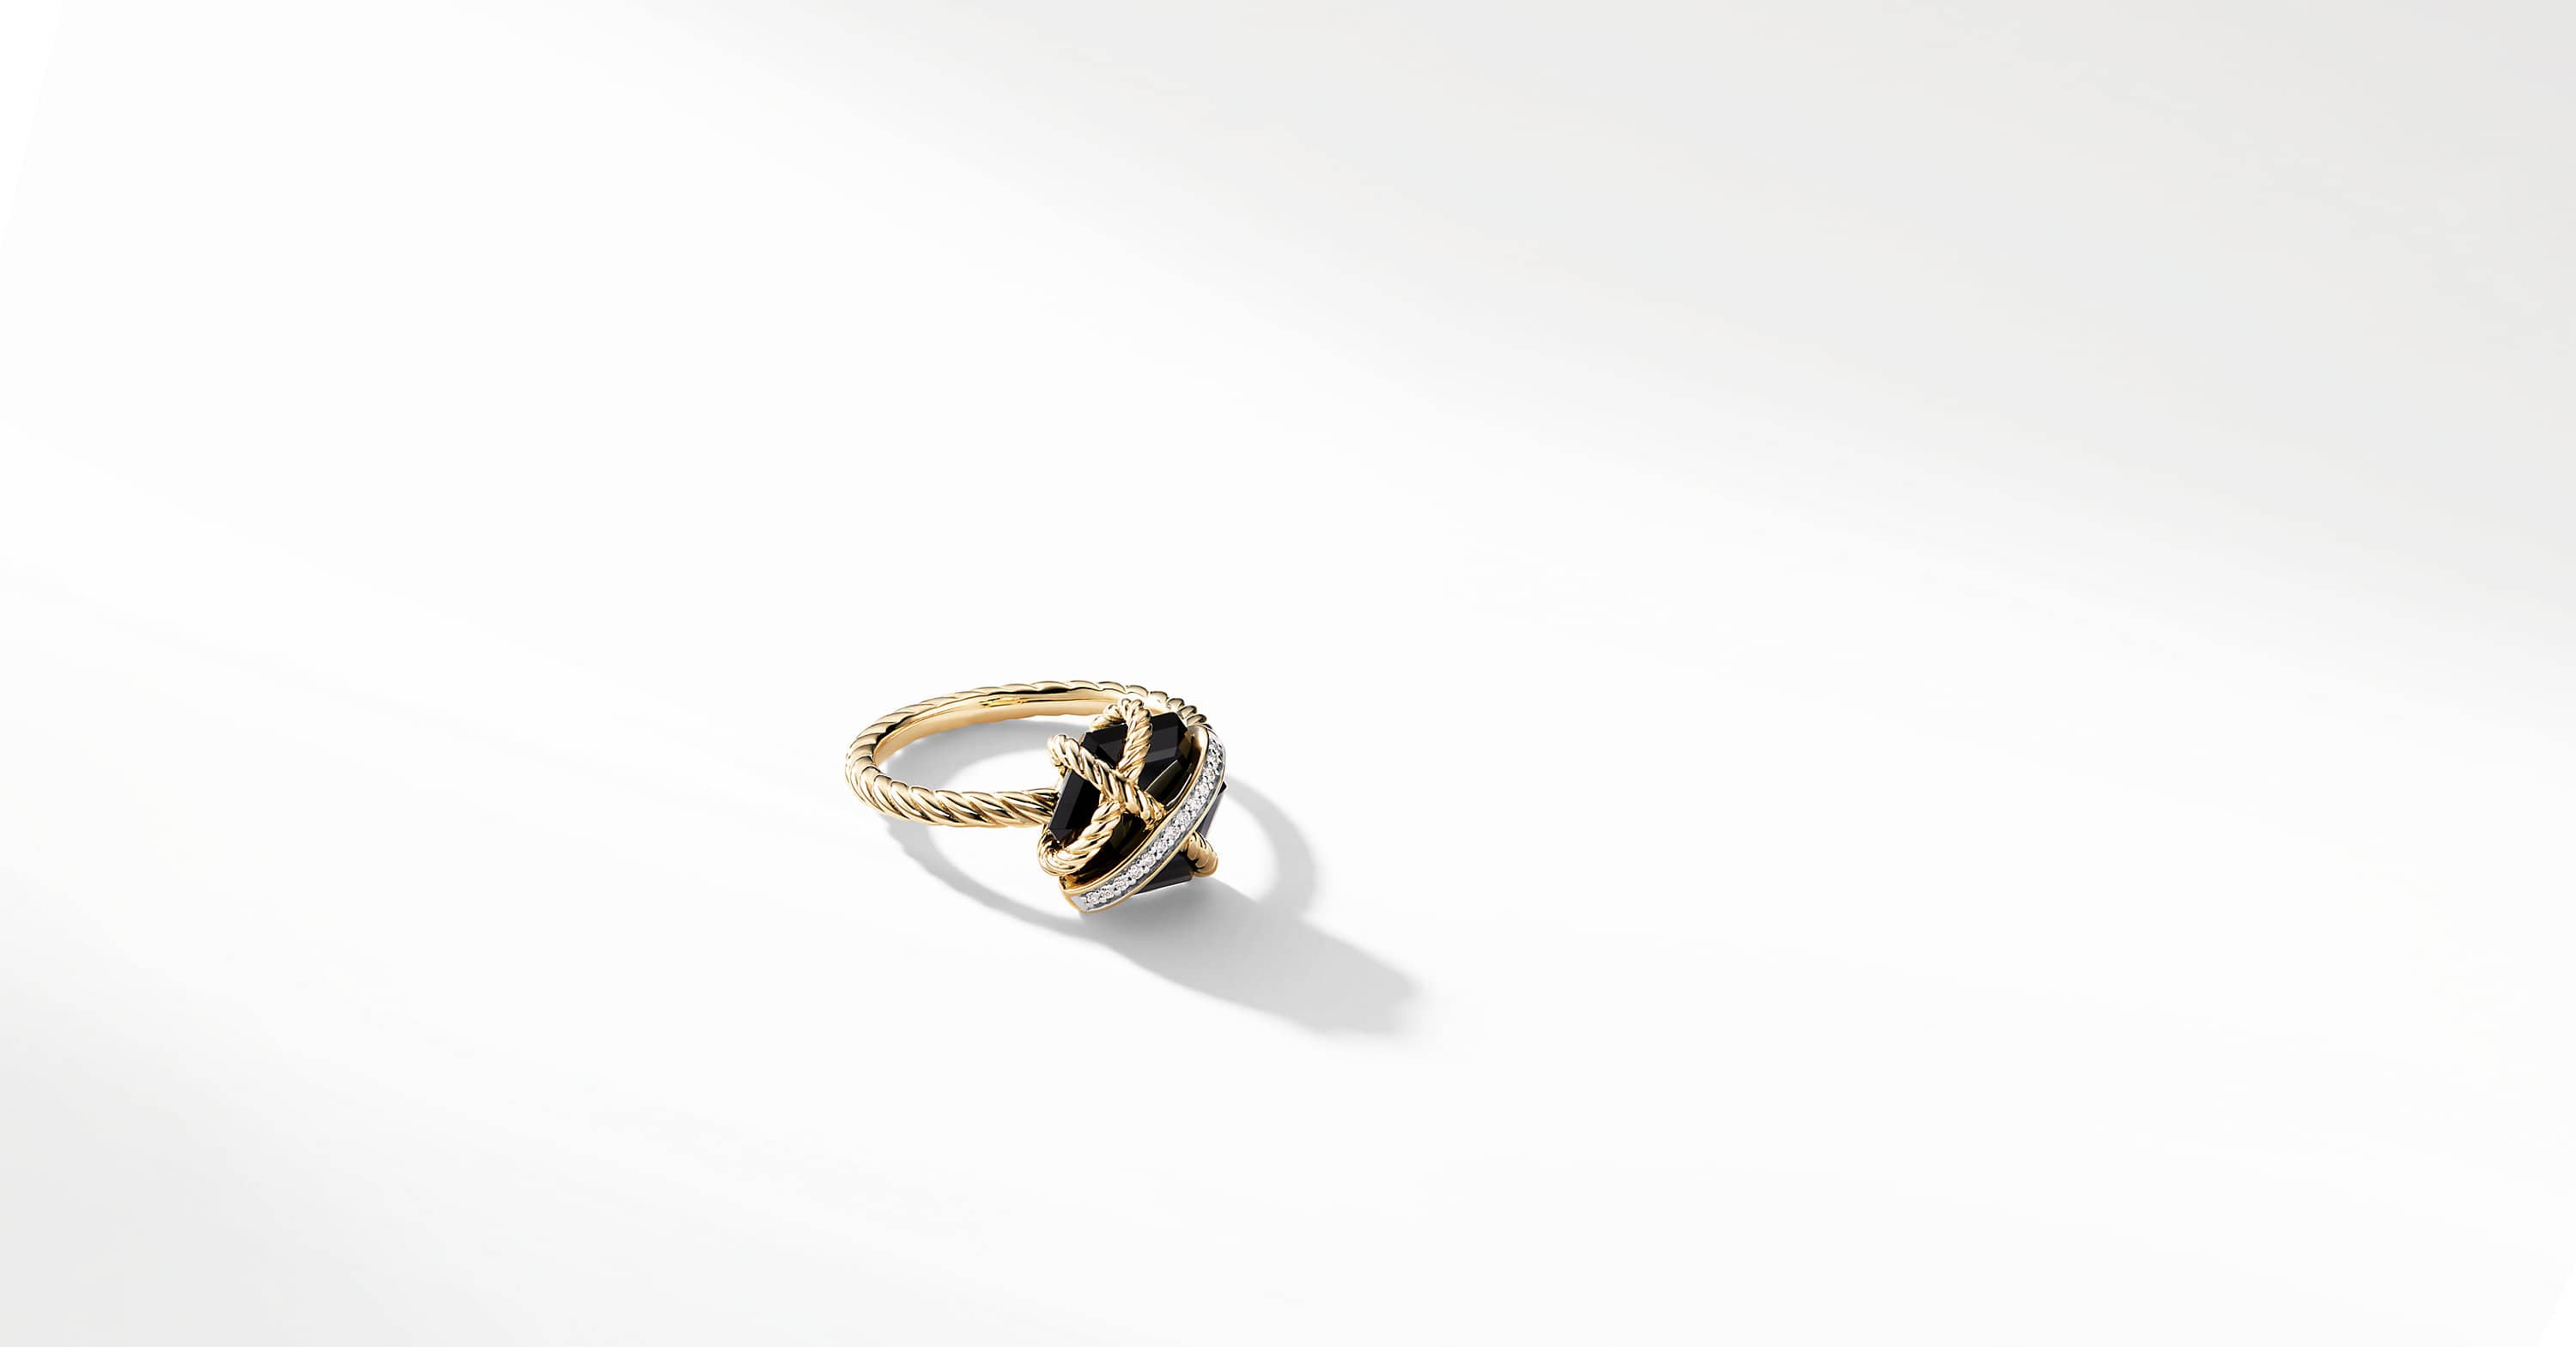 Cable Wrap Ring with Diamonds in 18K Gold, 10mm